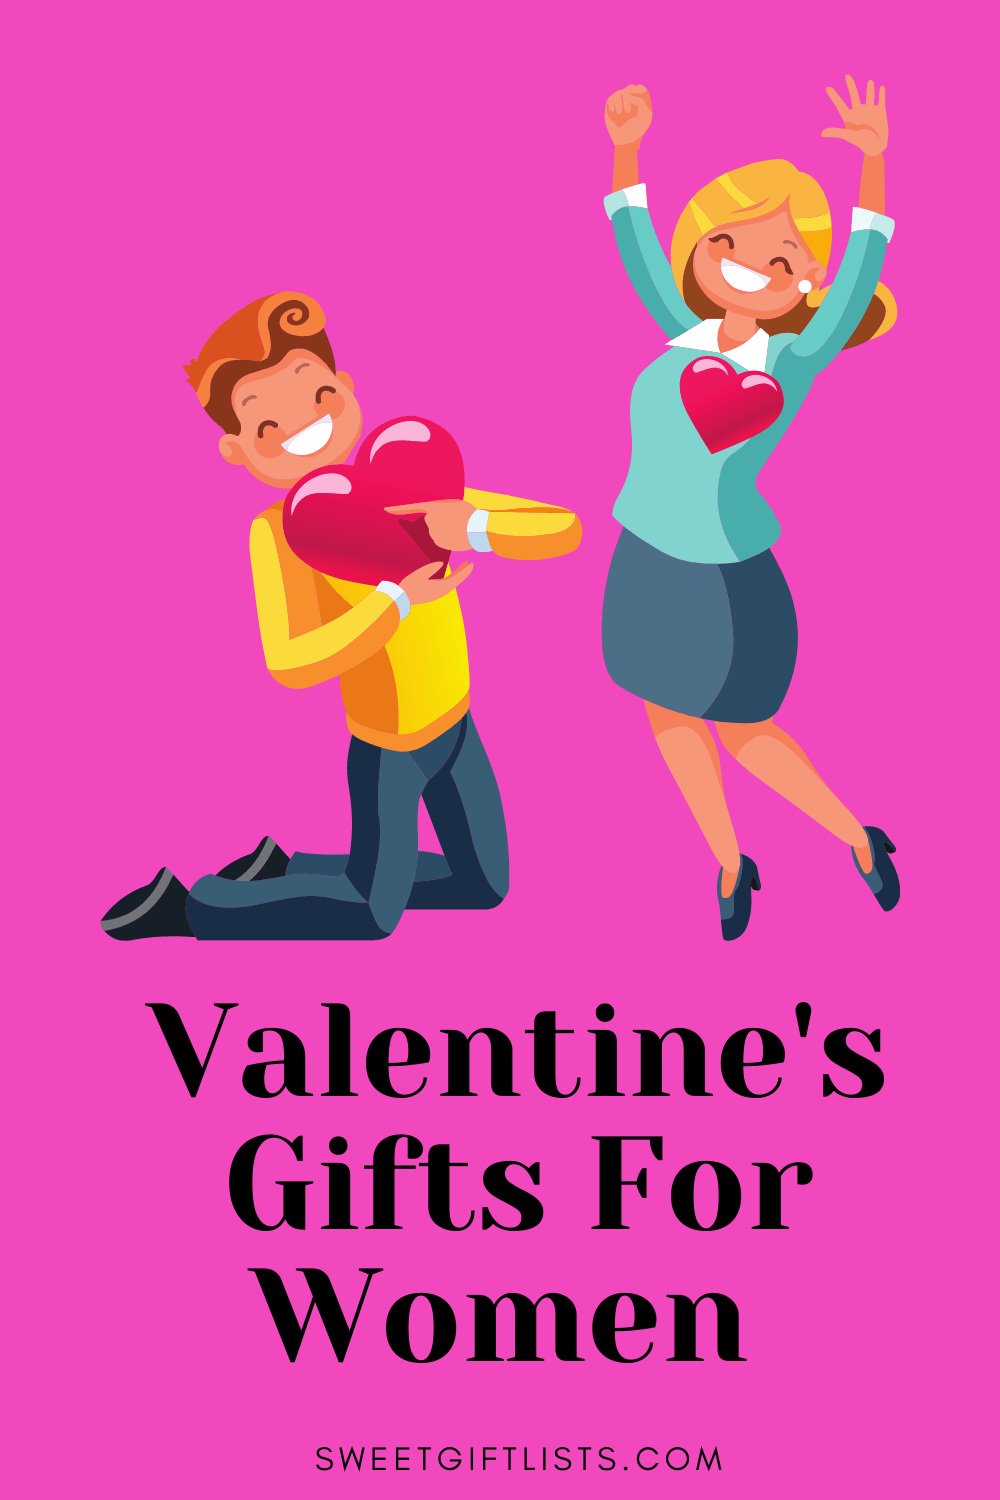 Valentine's Gifts For Women